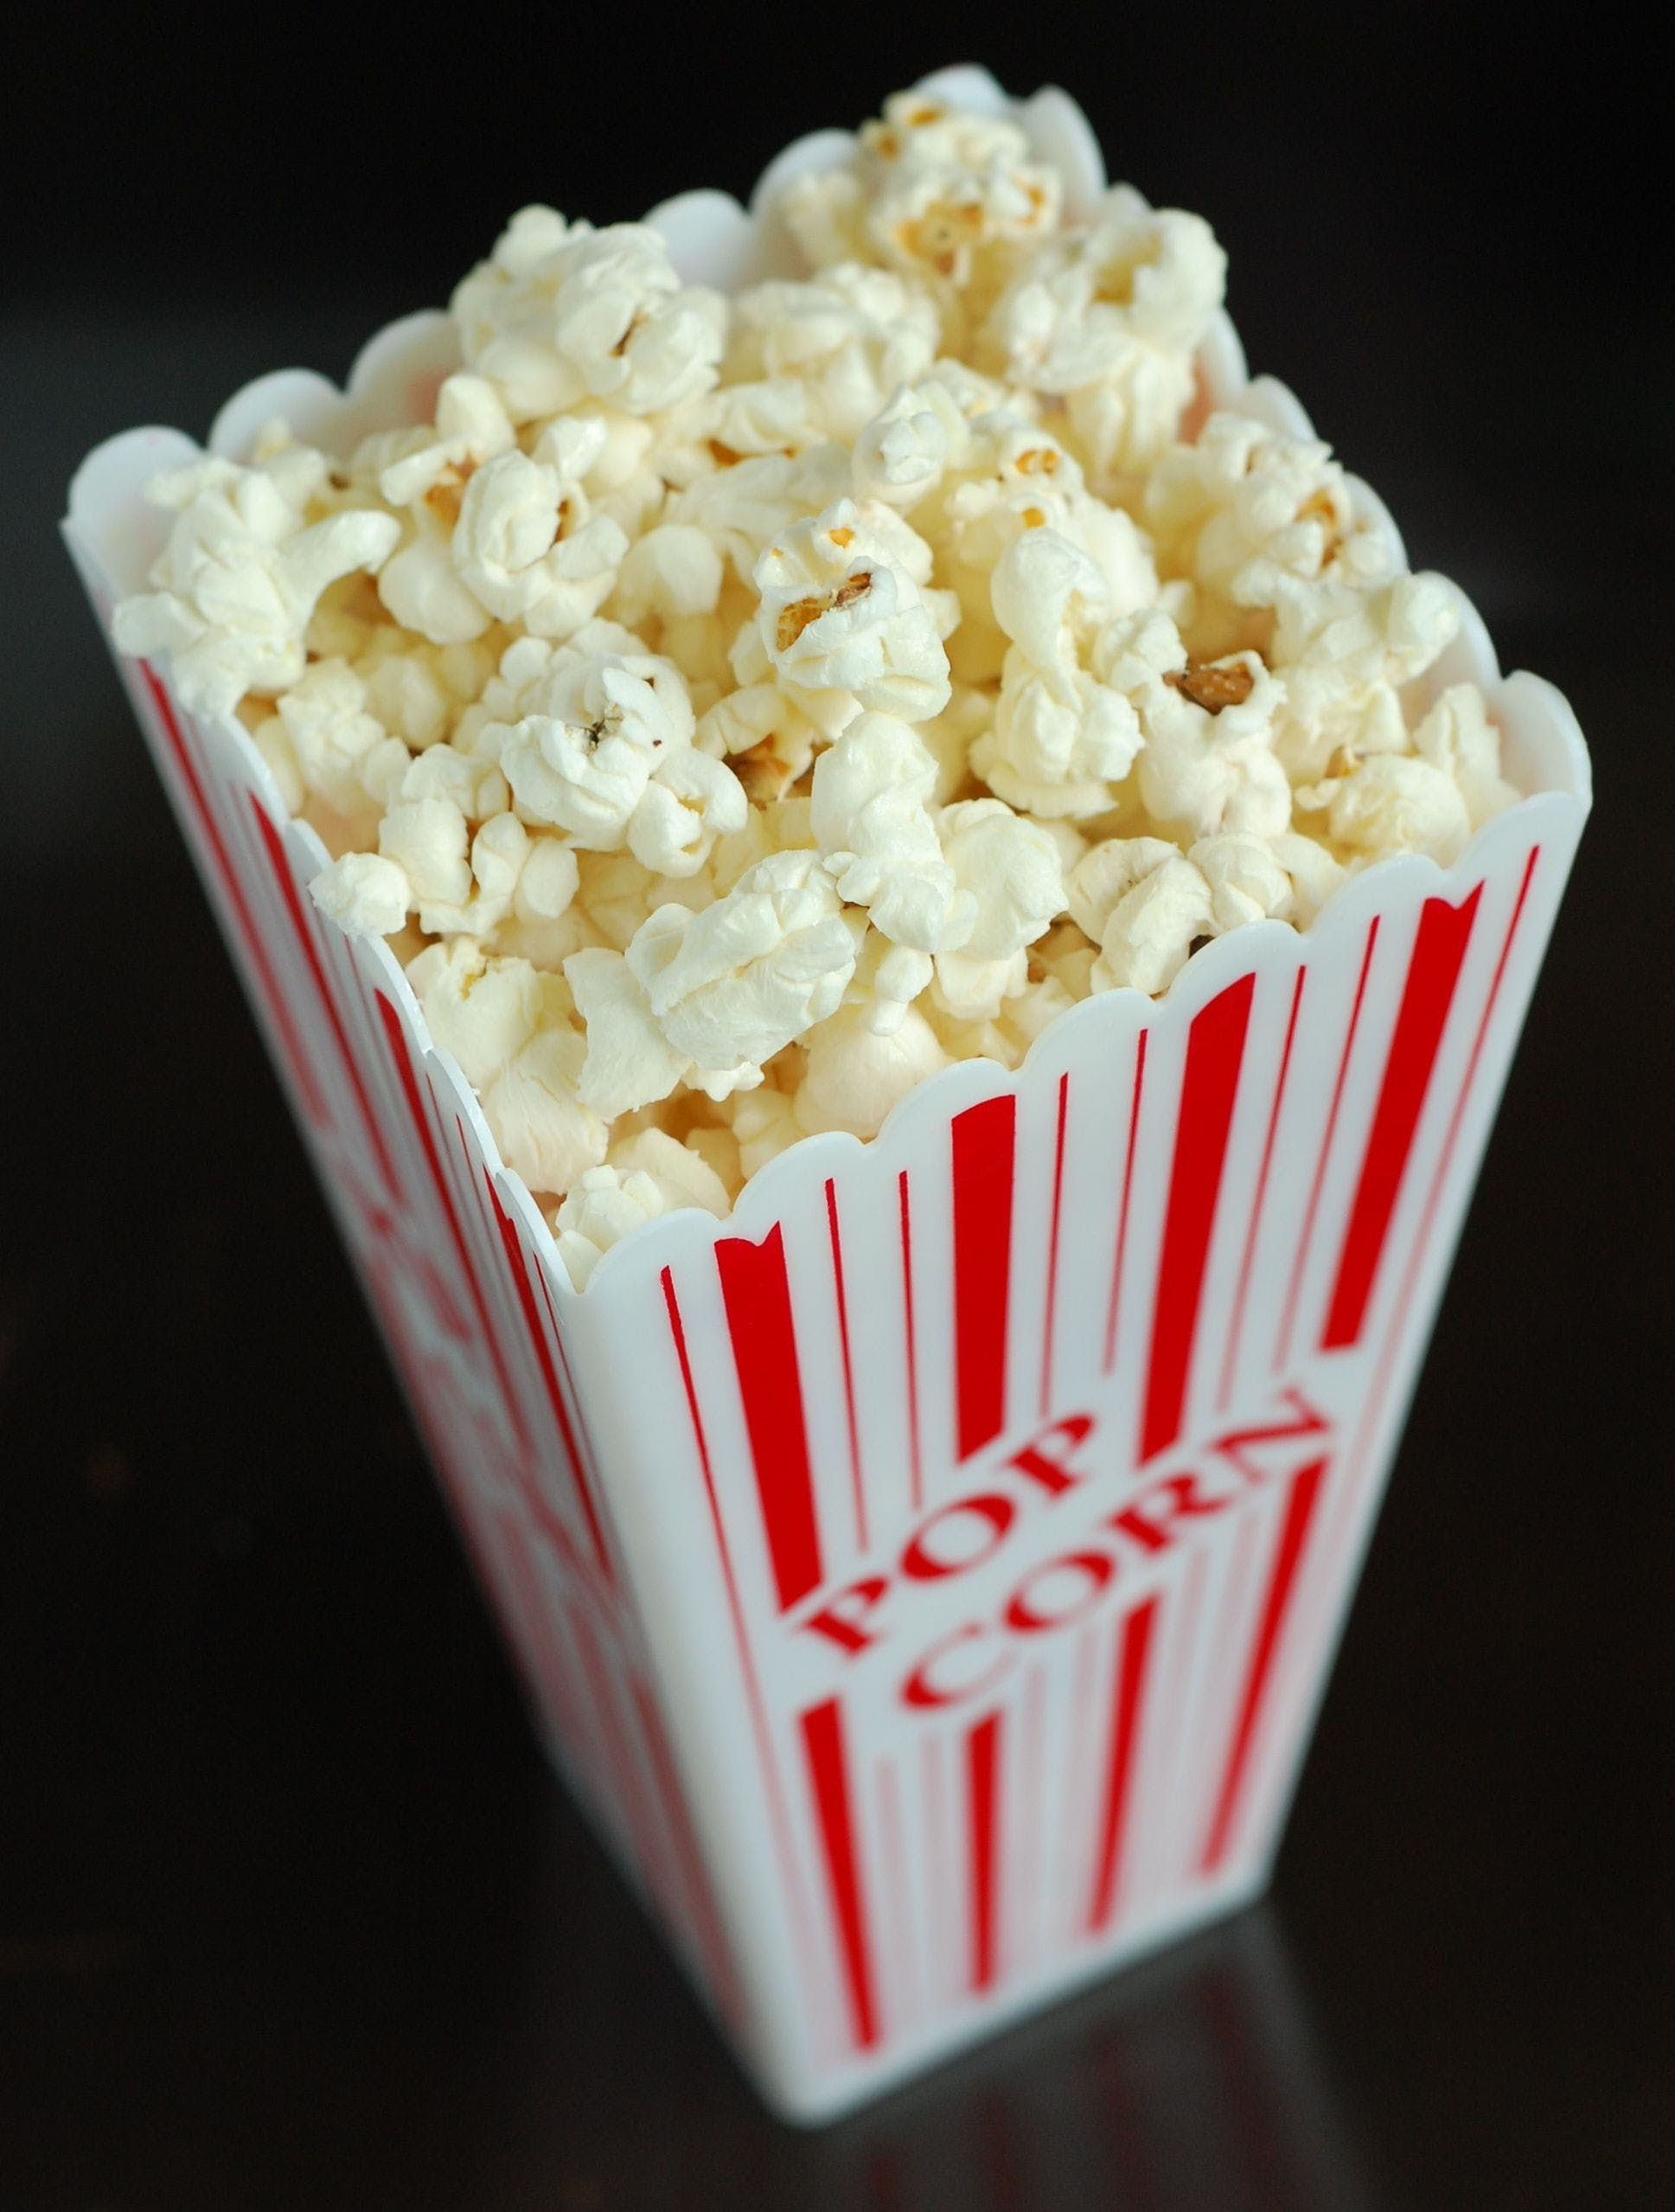 White Popcorns Inside of a Red and White Popcorn Box